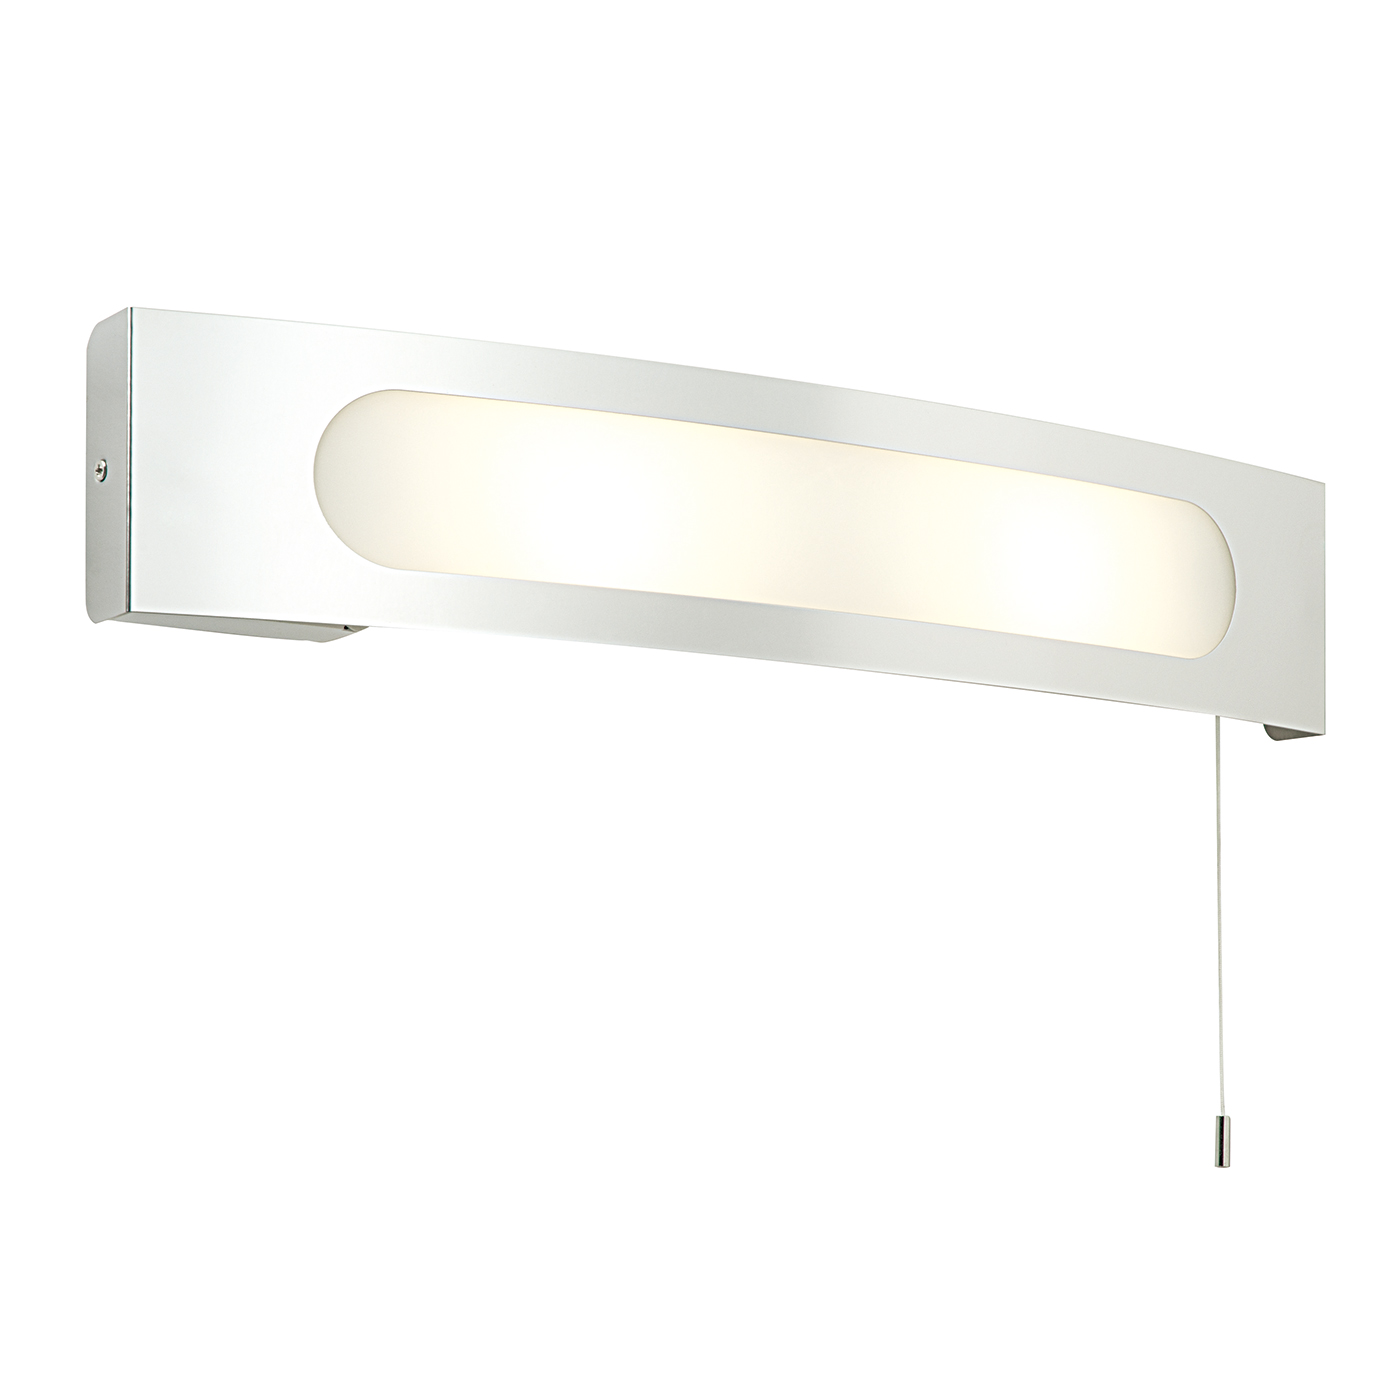 Endon Convesso bathroom shaver light 25W stainless steel frosted glass pull cord